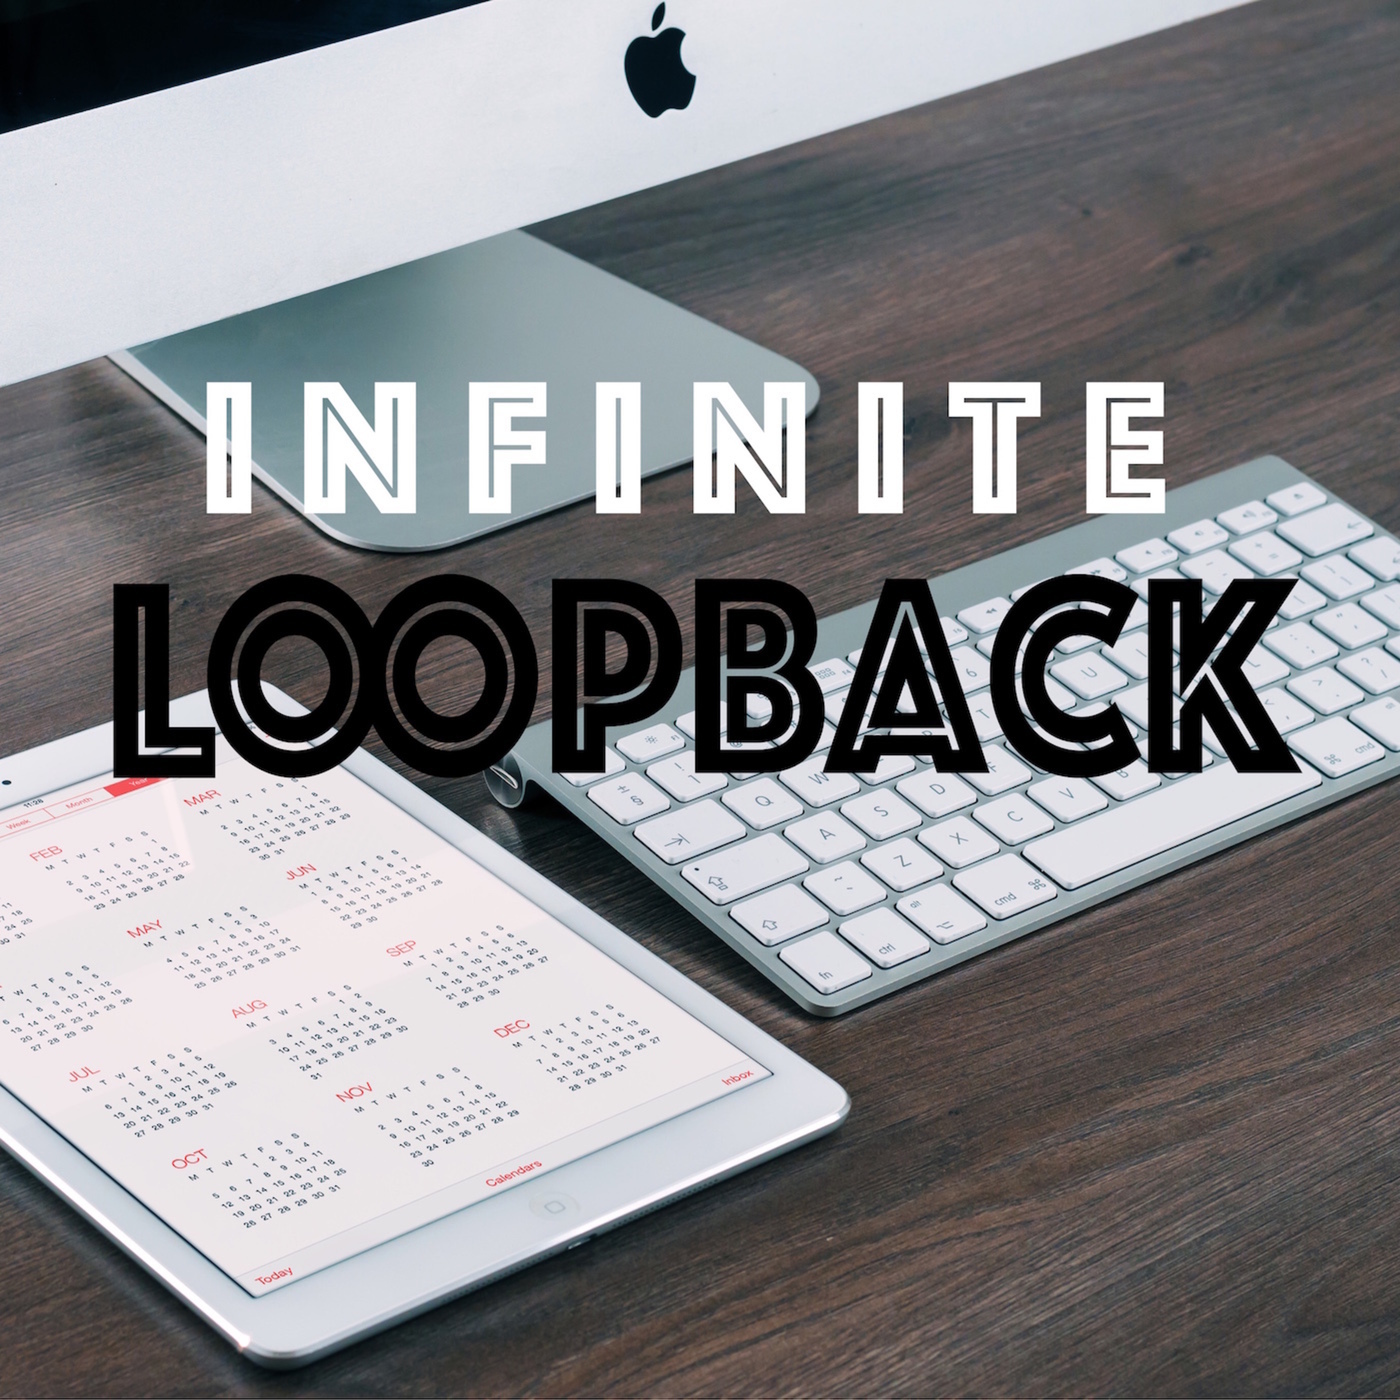 Infinite Loopback 41: The Sticky Experience